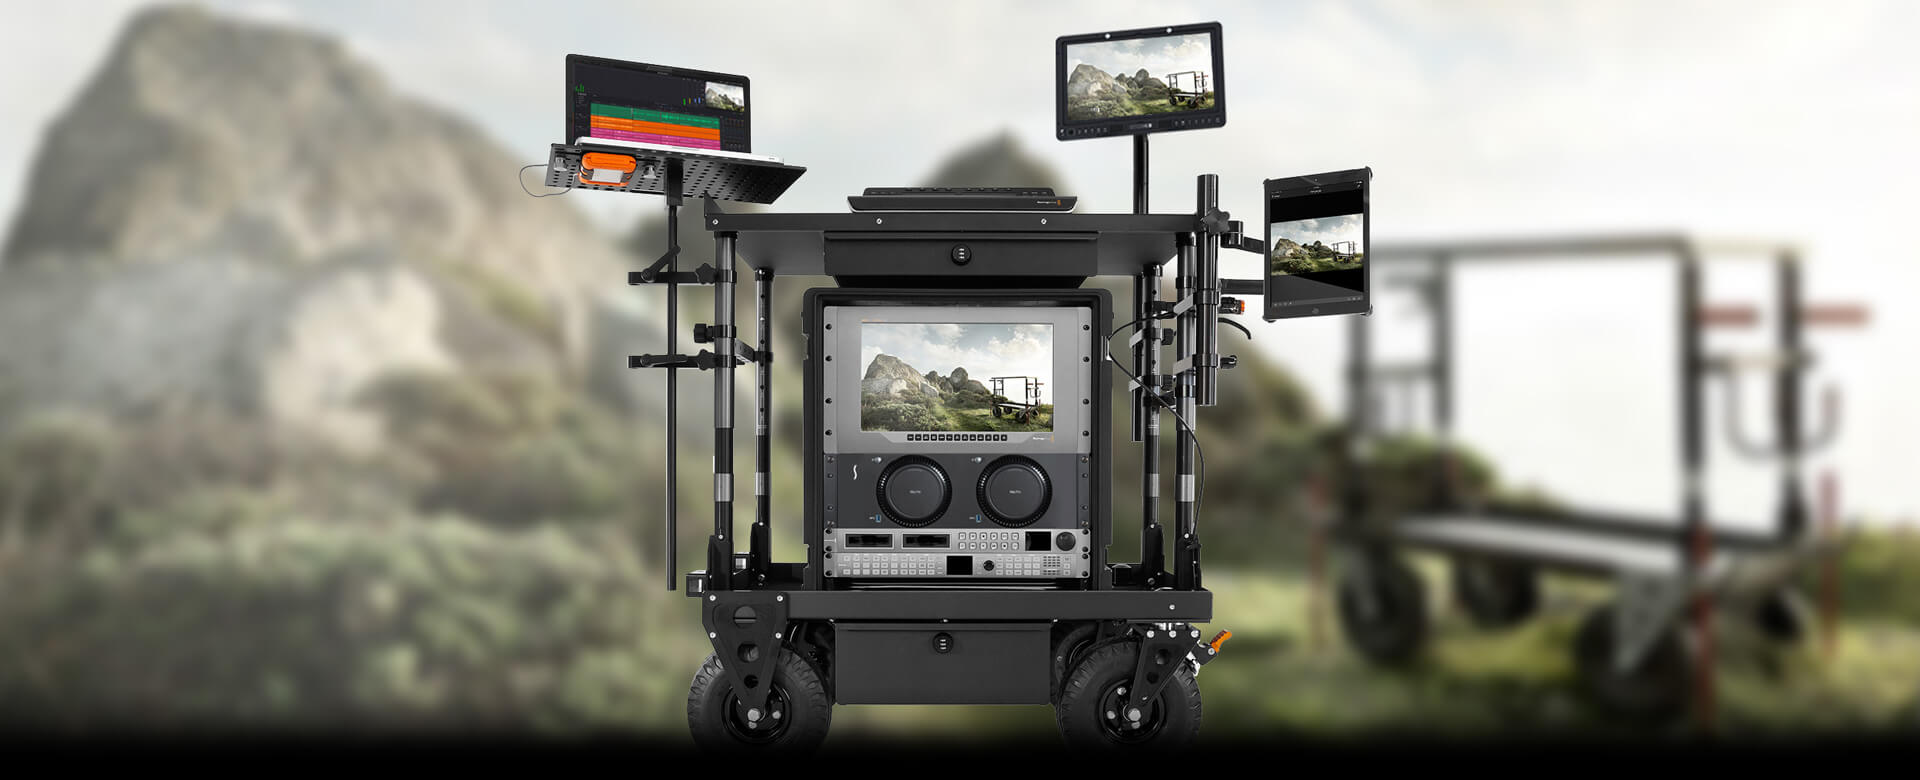 Blackmagic Design DaVinci Resolve DIT